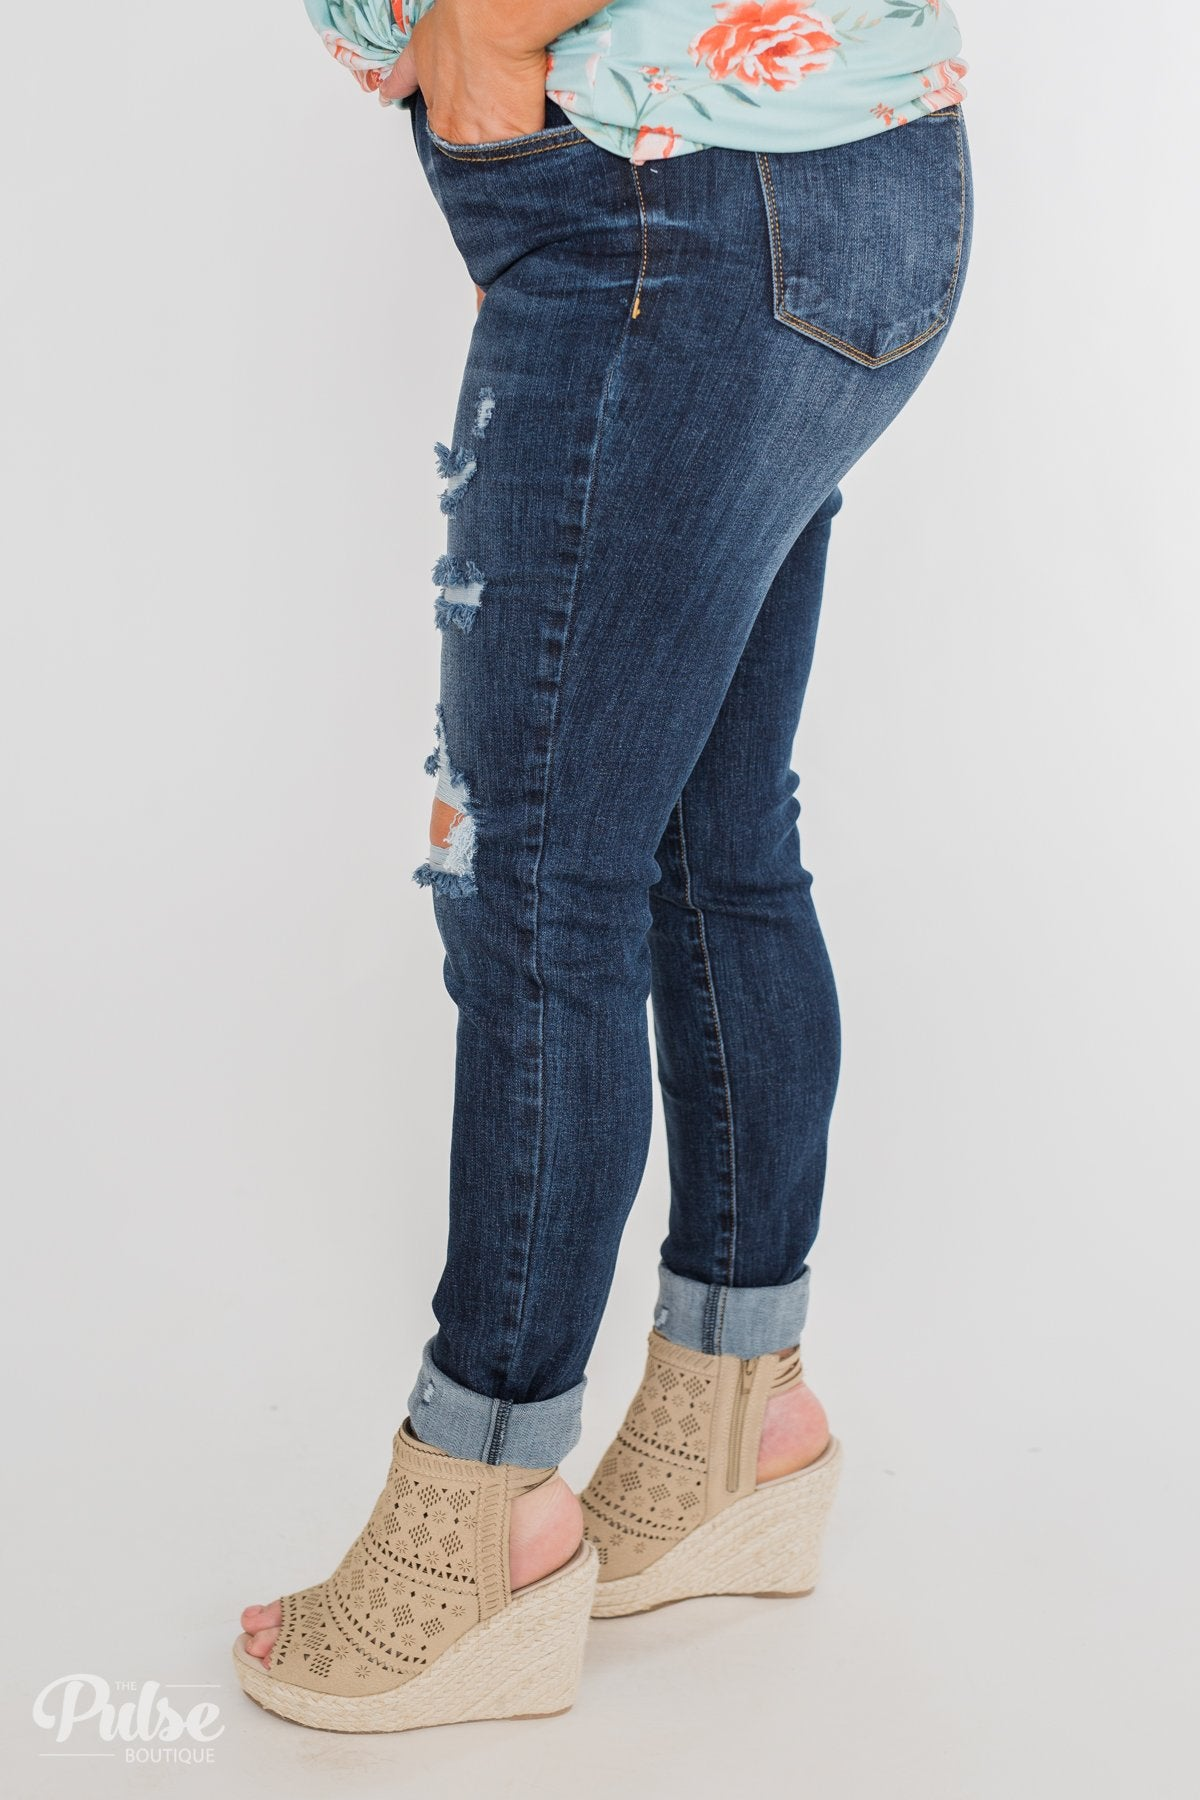 C'est Toi Distressed Ankle Cuff Skinnies- Polly Wash